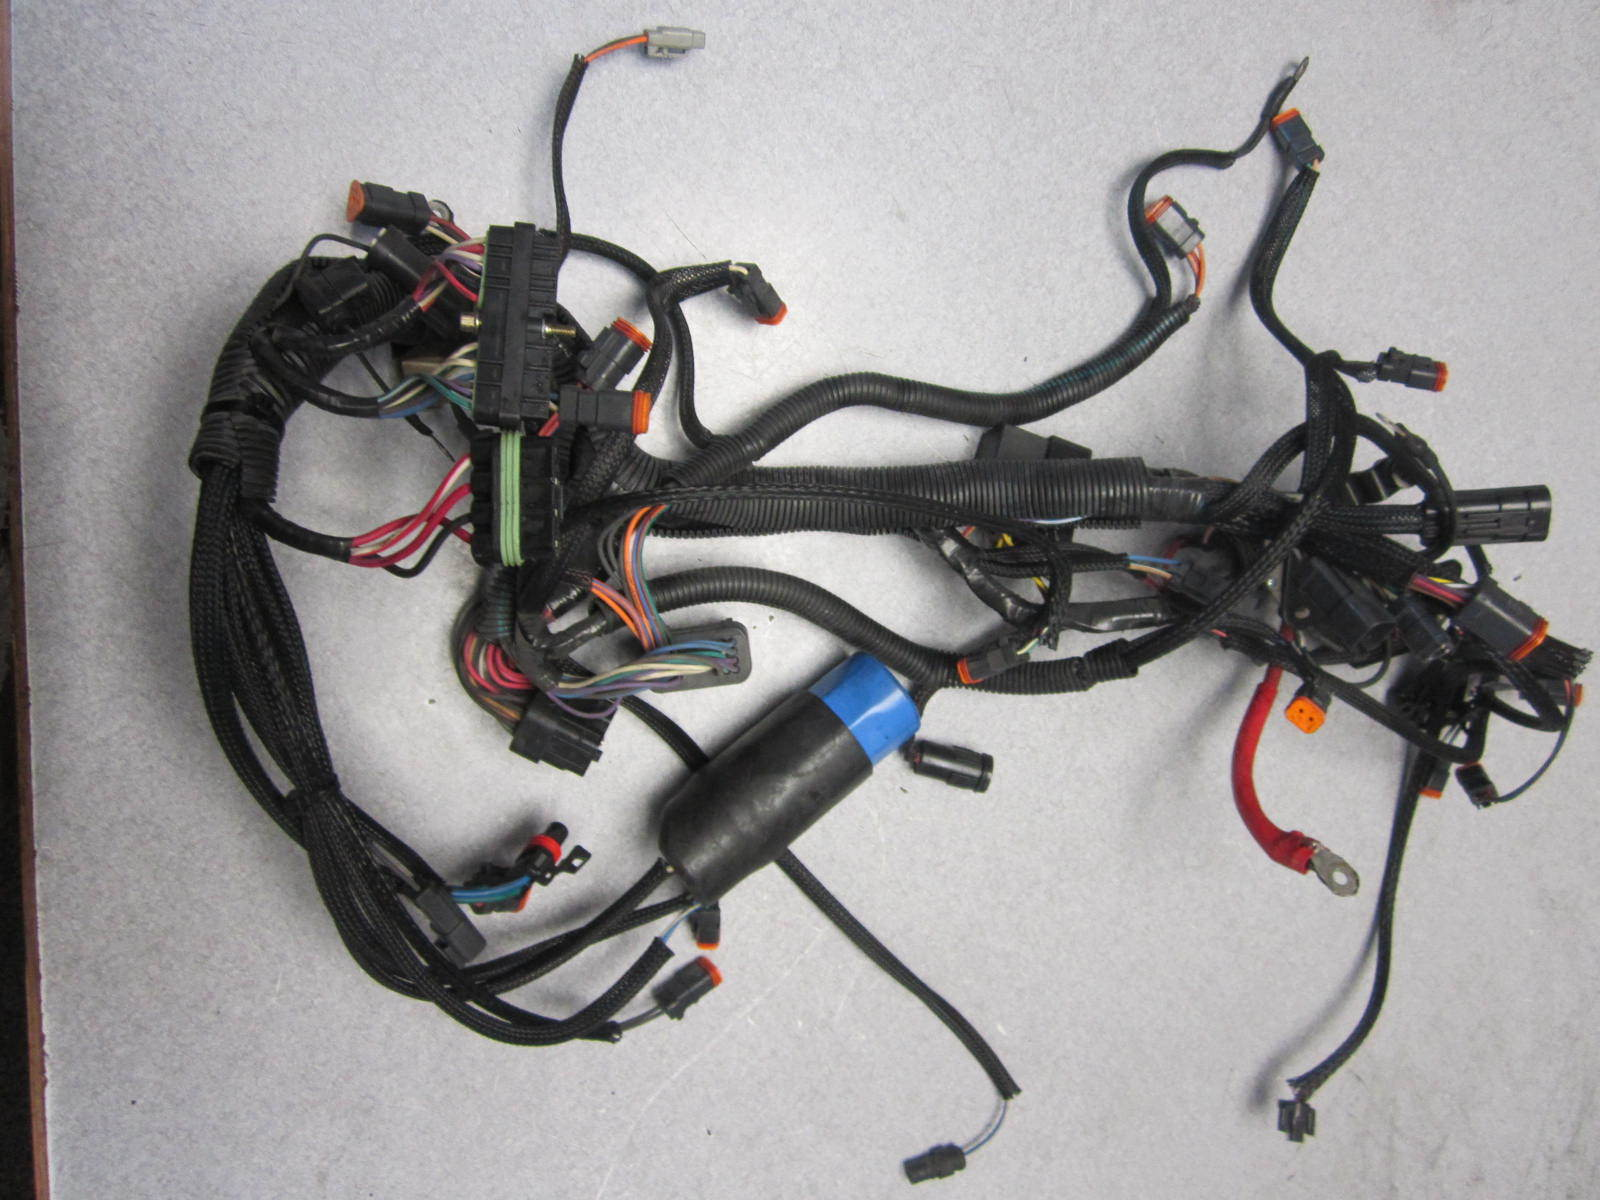 hight resolution of 586309 0586309 evinrude ficht v6 200 225 engine wire harness cable